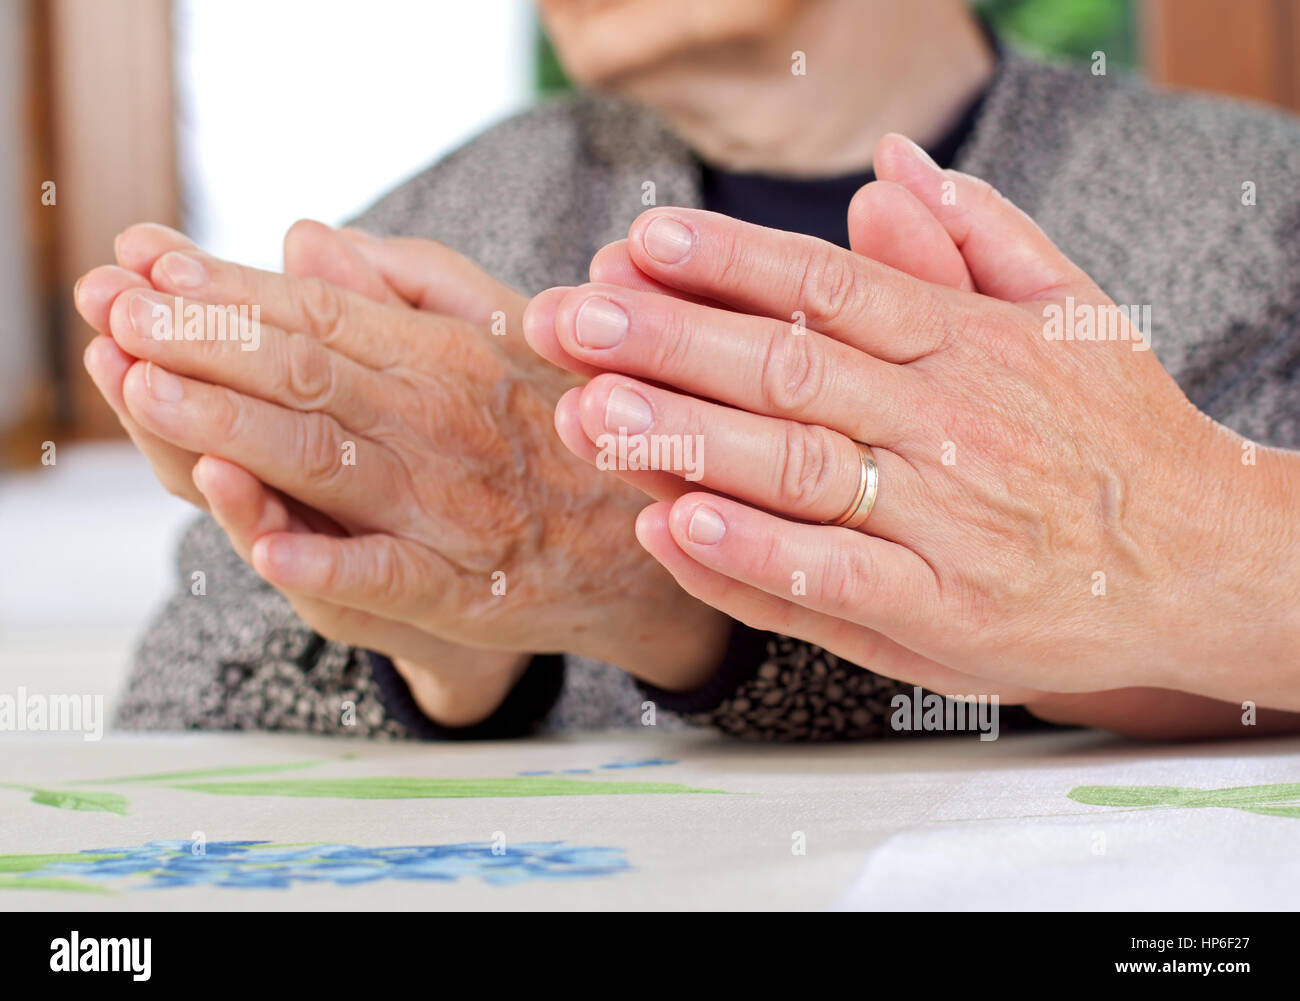 Picture of a doctor and a patient hand praying together - Stock Image